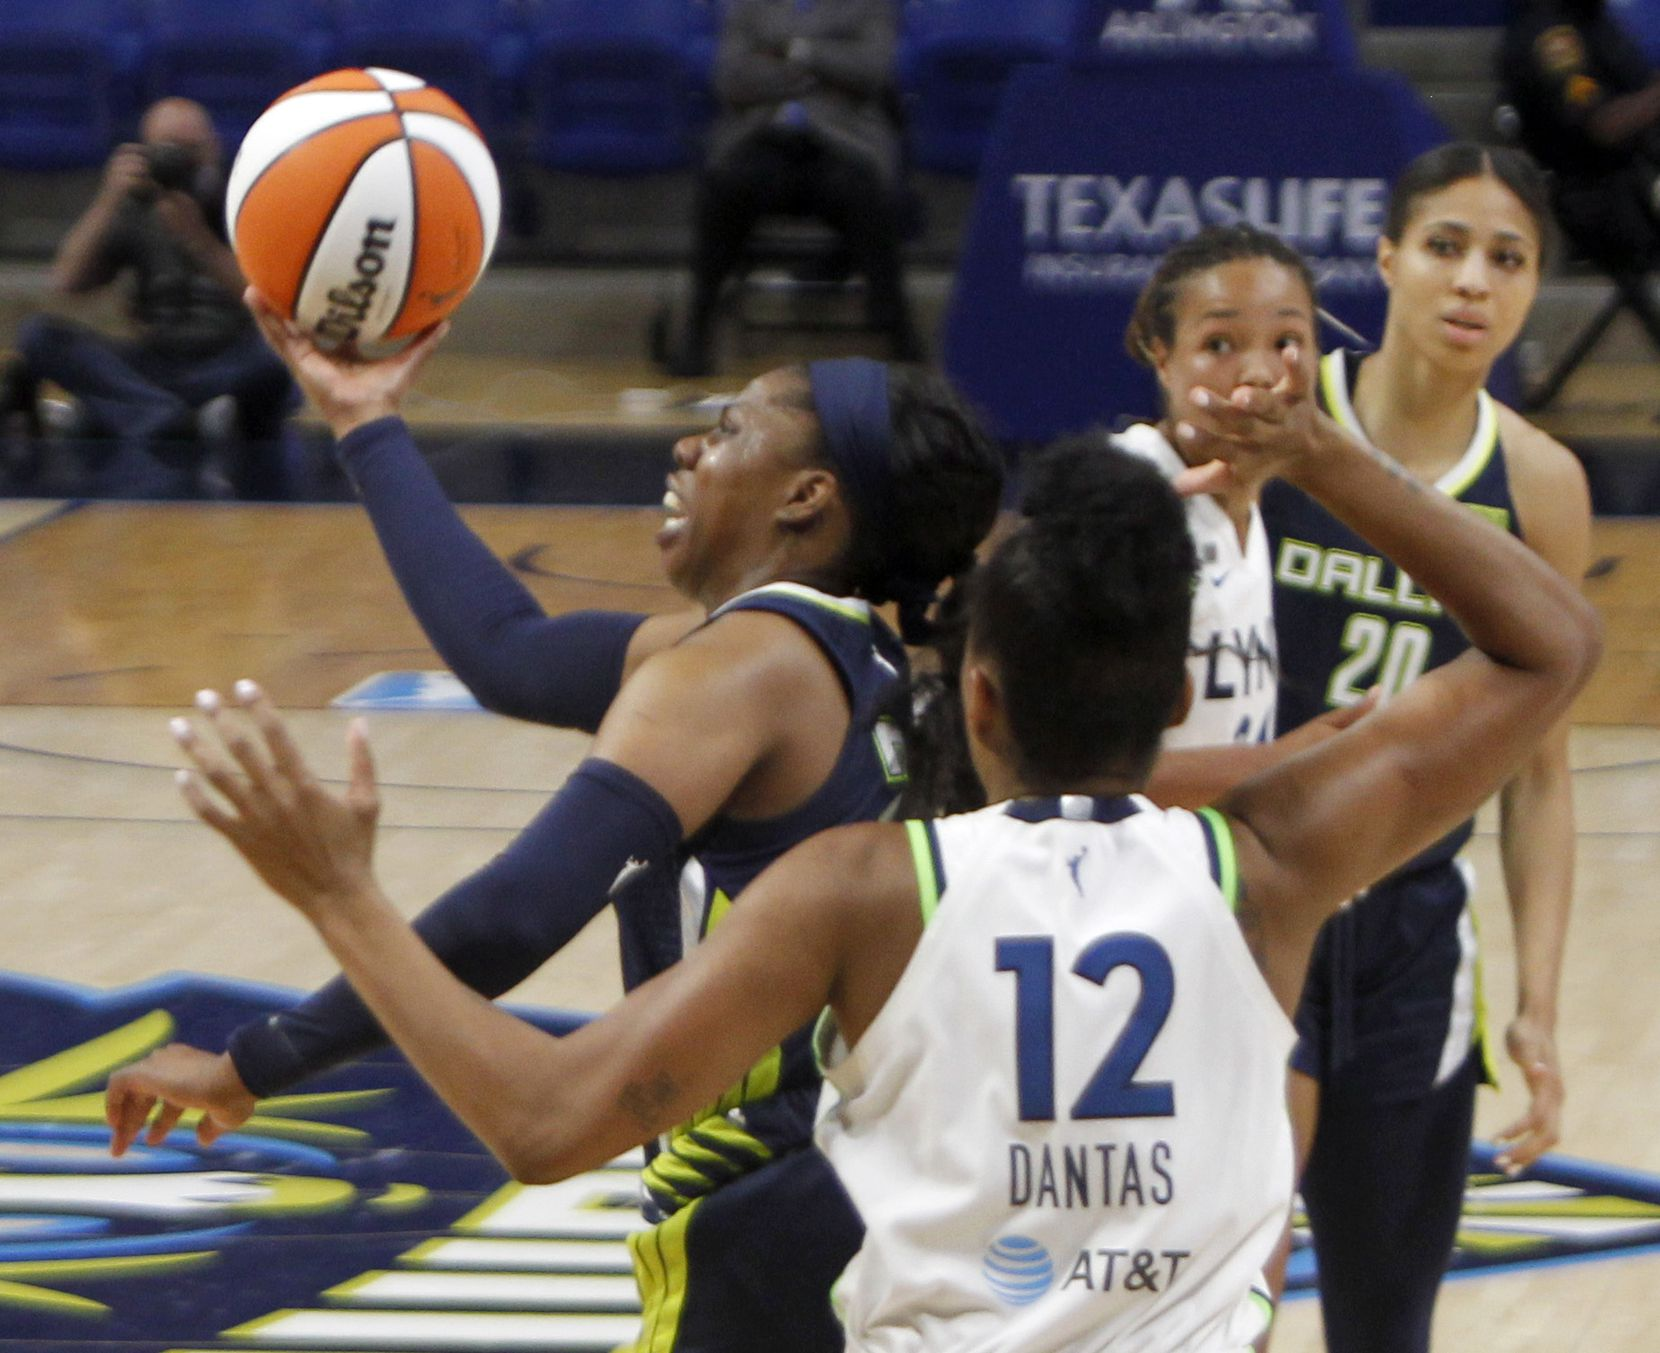 Dallas Wings guard Arike Ogunbowale (24) drives the lane after cutting inside the defense of Minnesota Lynx forward Damiris Dantas (12) during the 3rd quarter of play. The two teams played their WNBA game at College Park Center on the campus of the University of Arlington on June 17, 2021(Steve Hamm/ Special Contributor)